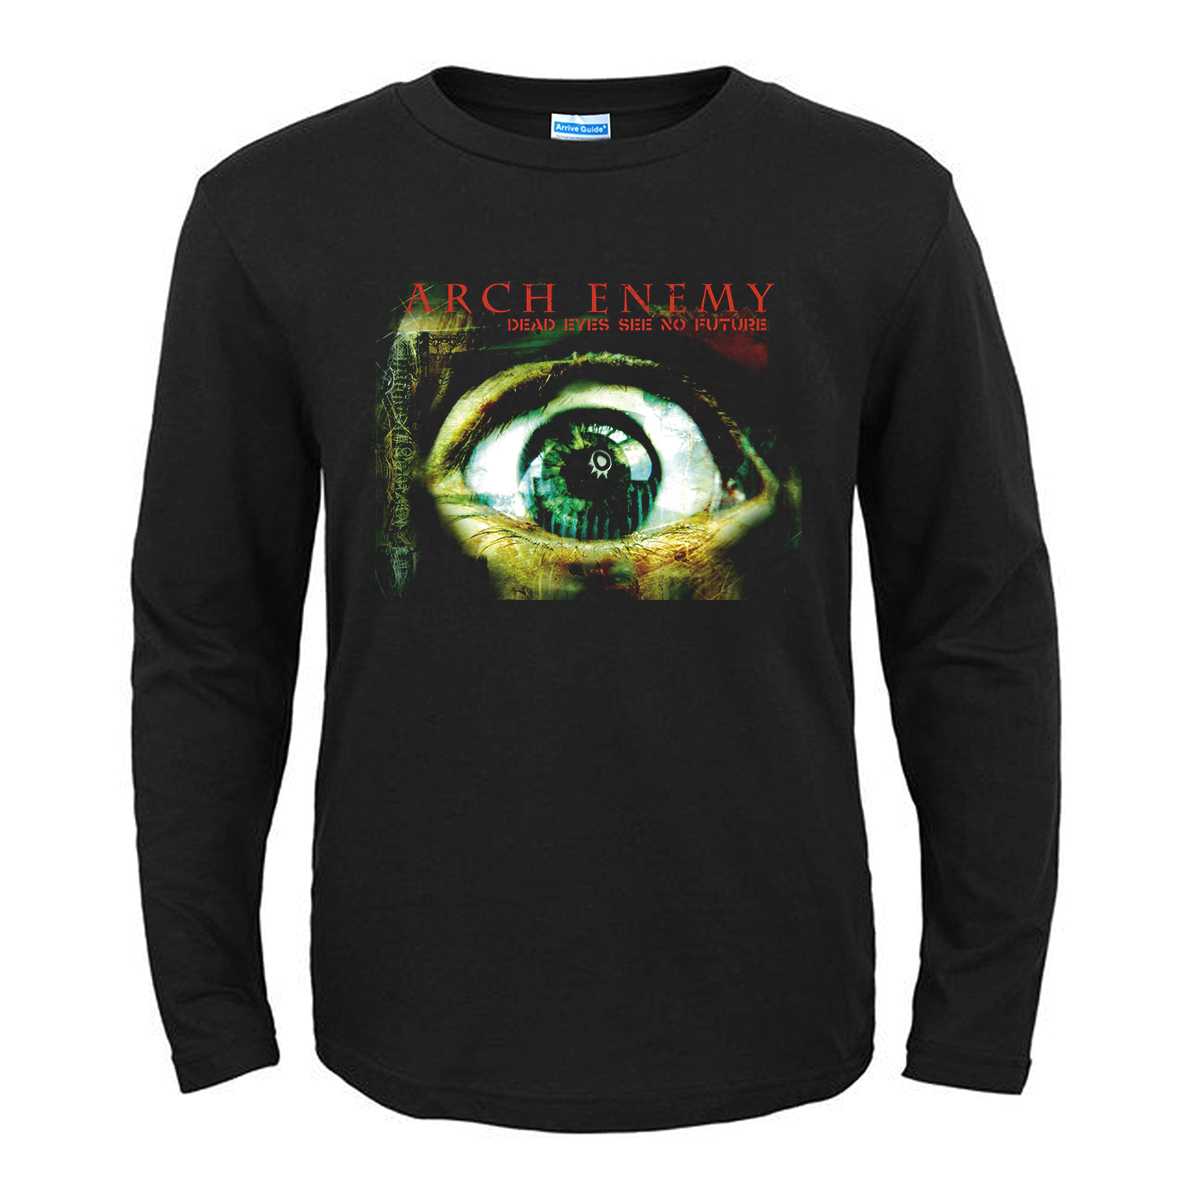 Merchandise T-Shirt Arch Enemy Dead Eyes See No Future